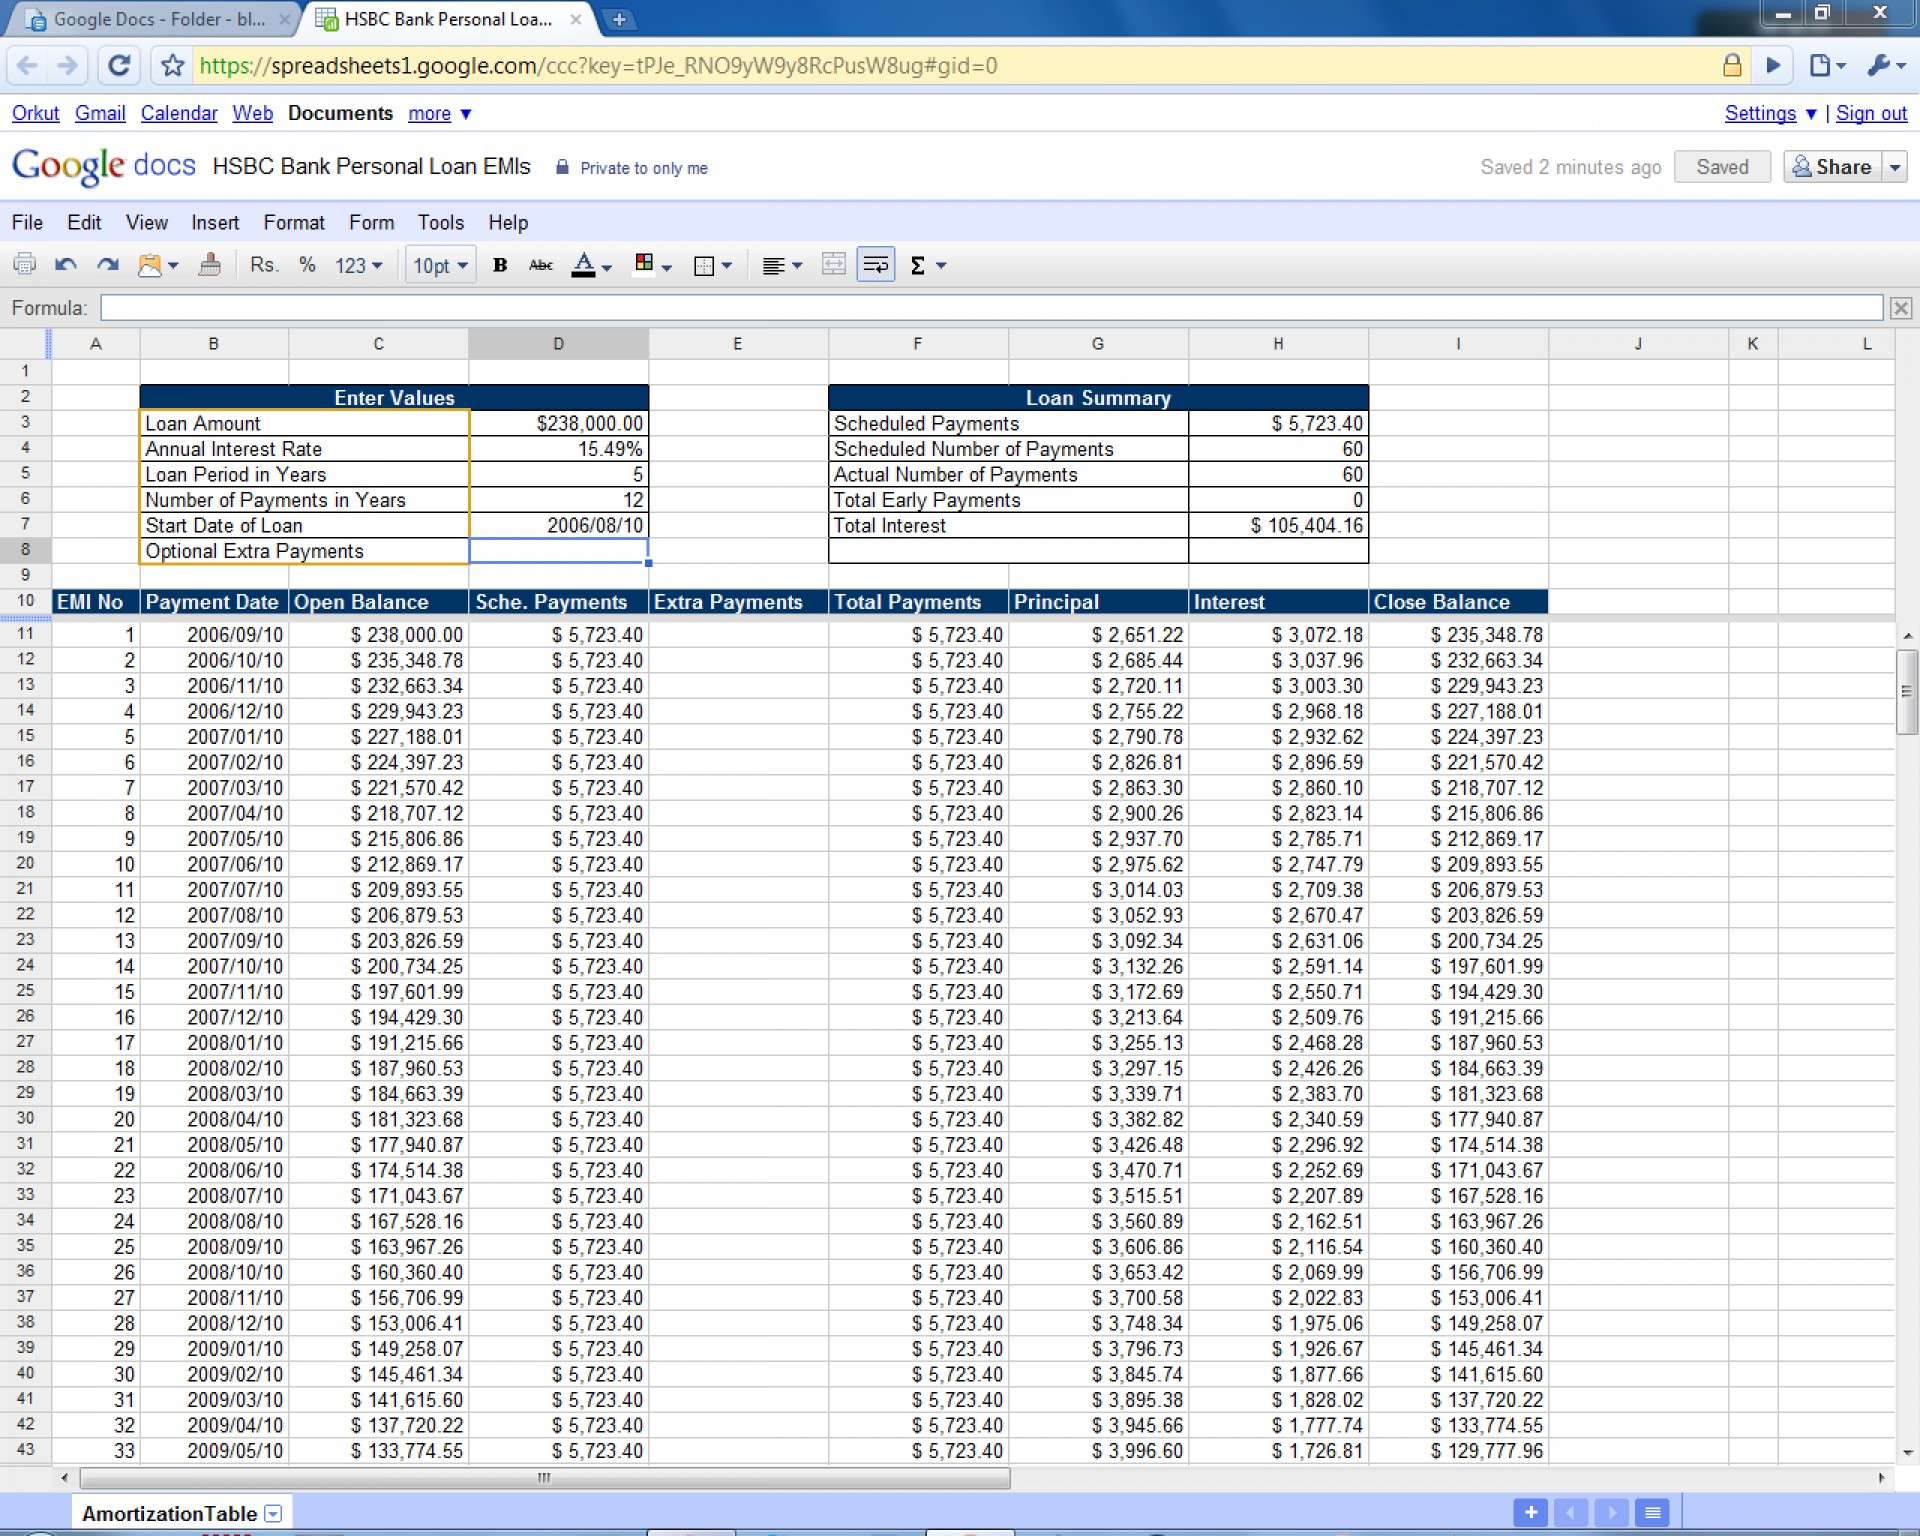 Amortization Spreadsheet With Extra Payments Google Sheets Within 018 Auto Loanmortization Schedule Extra Payments Excel Luxury